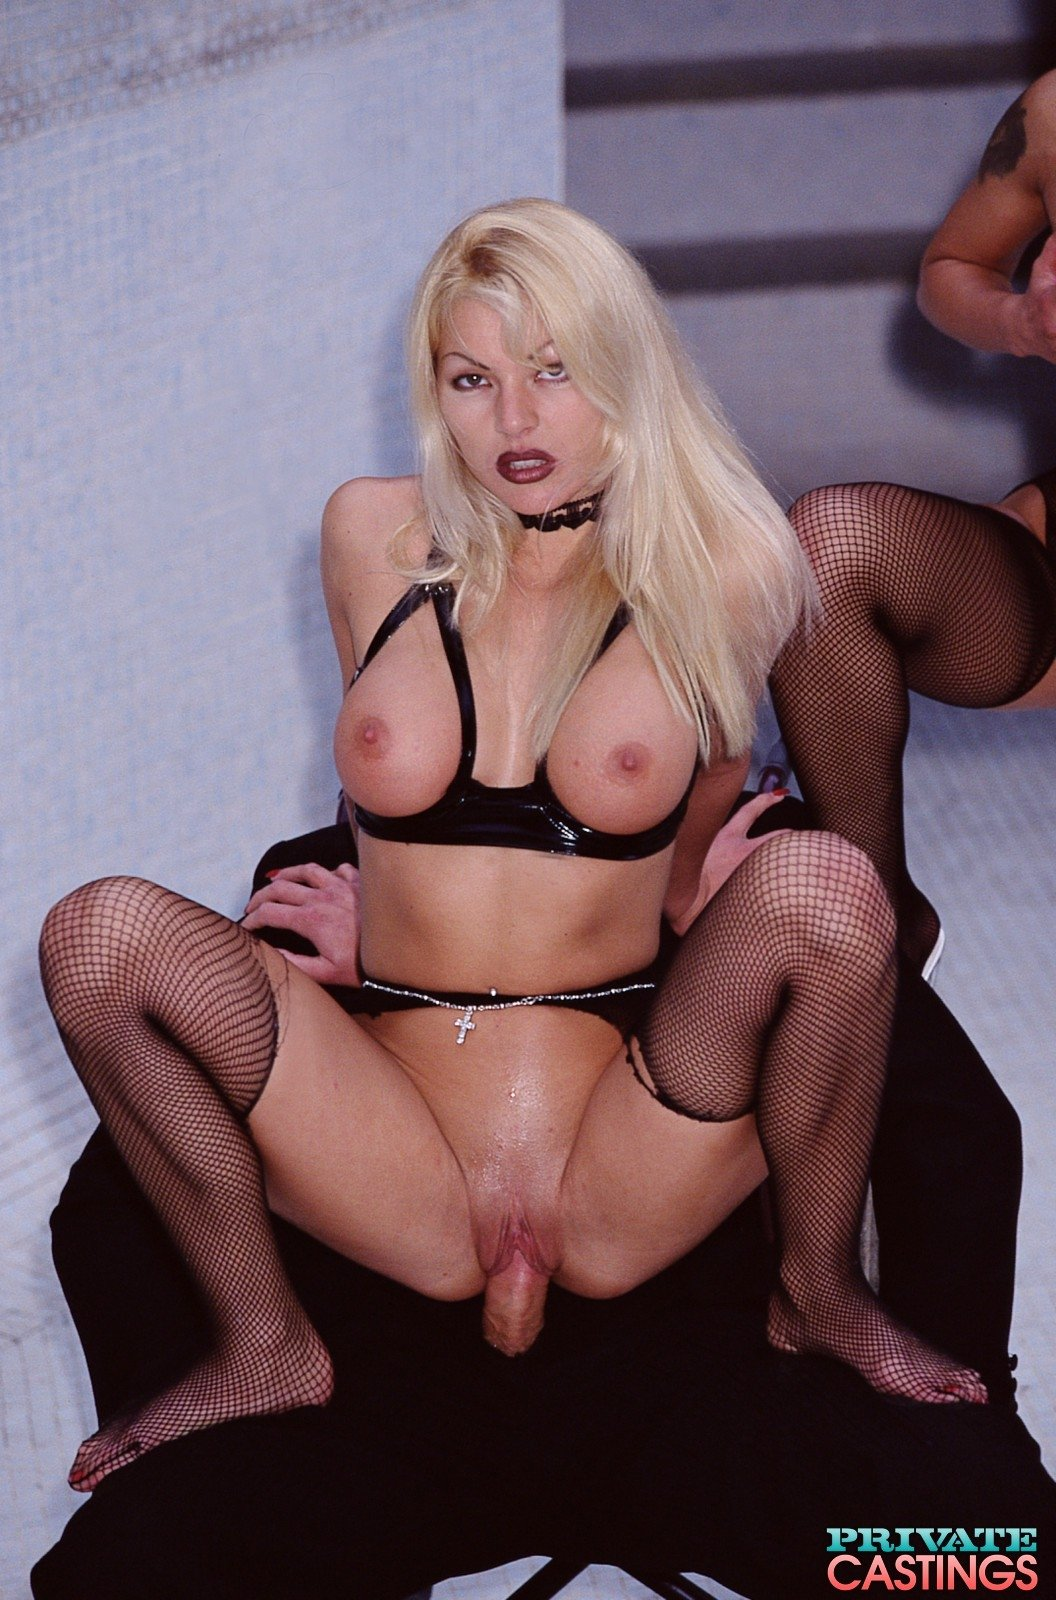 Captivating blonde bitch Venus in sexy lingerie likes to masturbate there